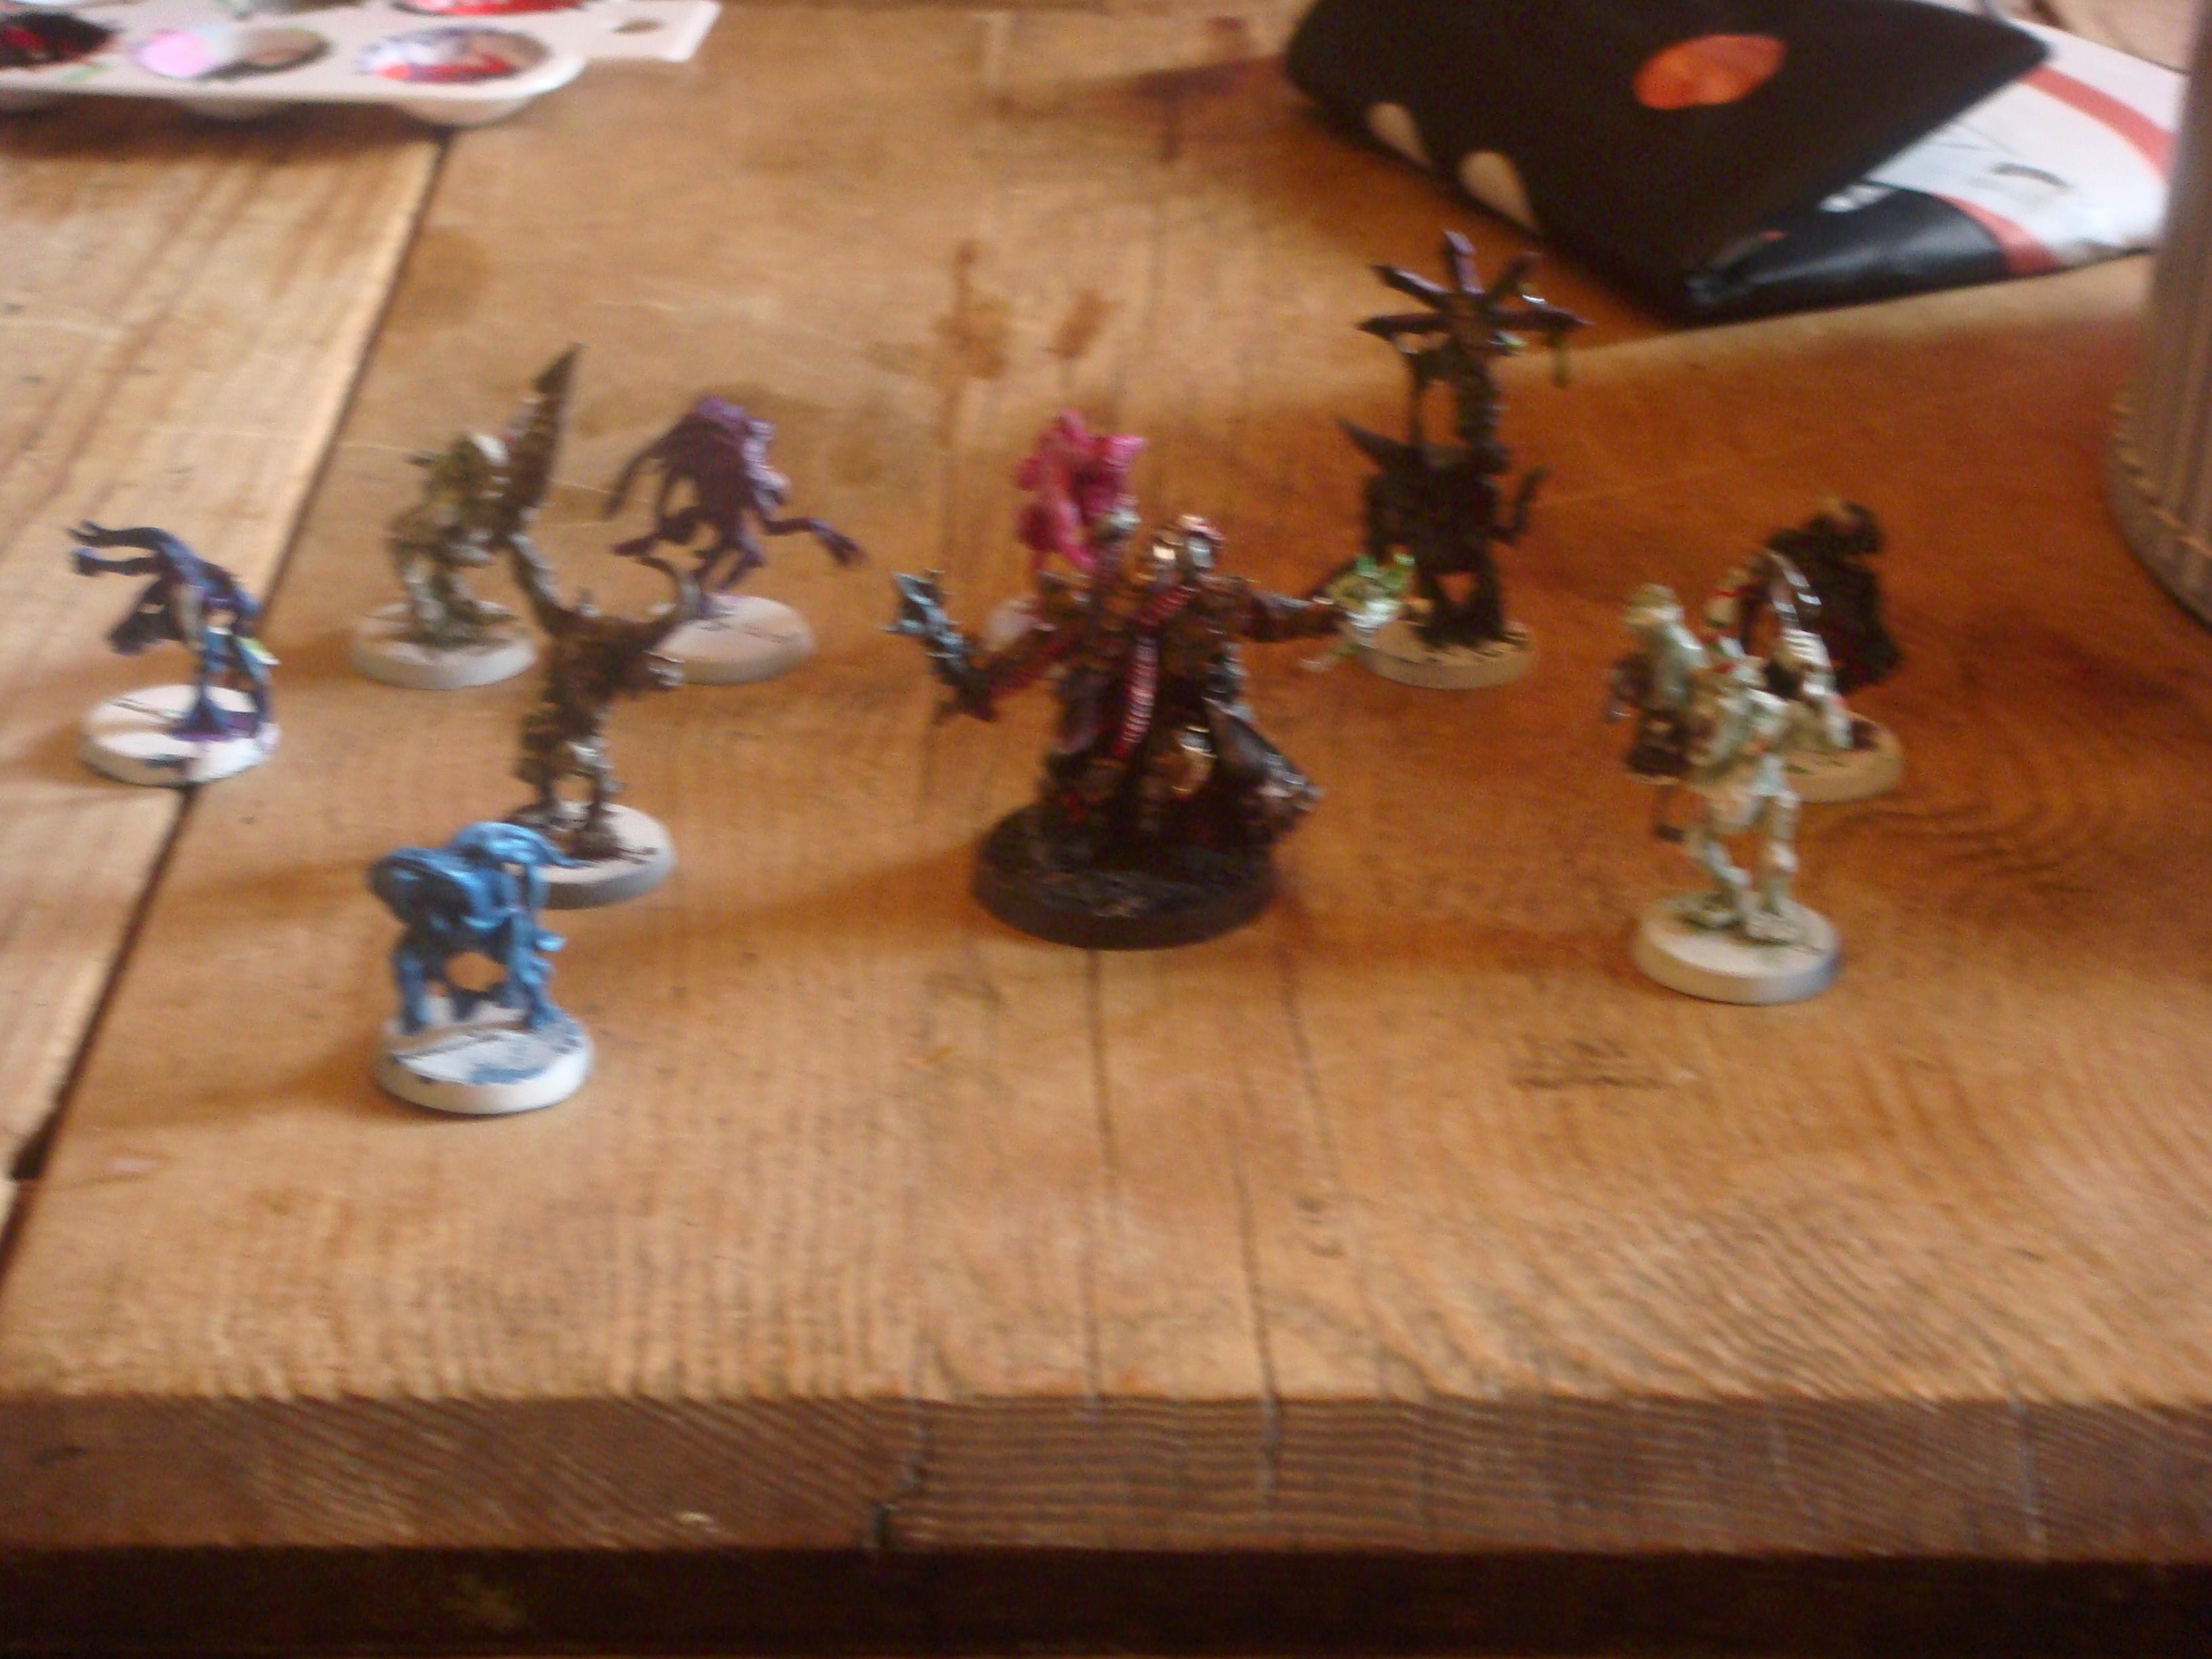 Most of my painted Daemons